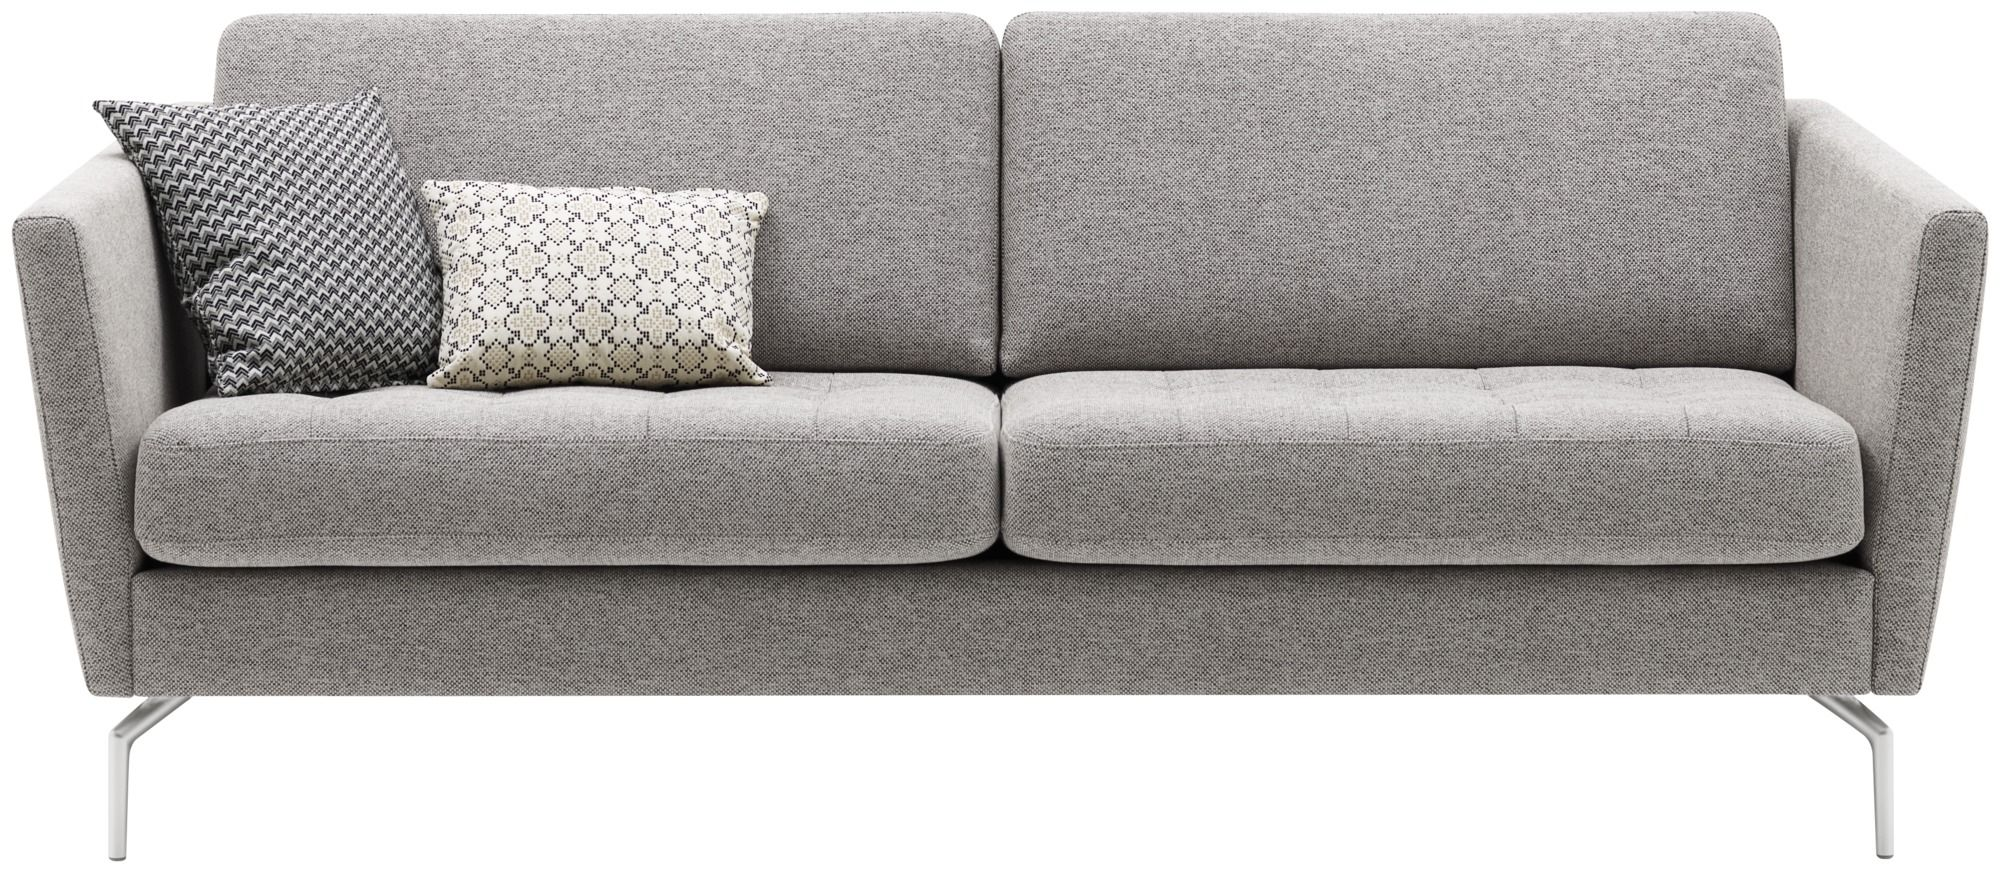 Osaka sofa from boconcept s1945 77hx206lx875d home osaka sofa tufted seat the product is available in fabrics and leathers as shown light grey mojave fabric osaka boconcept parisarafo Image collections